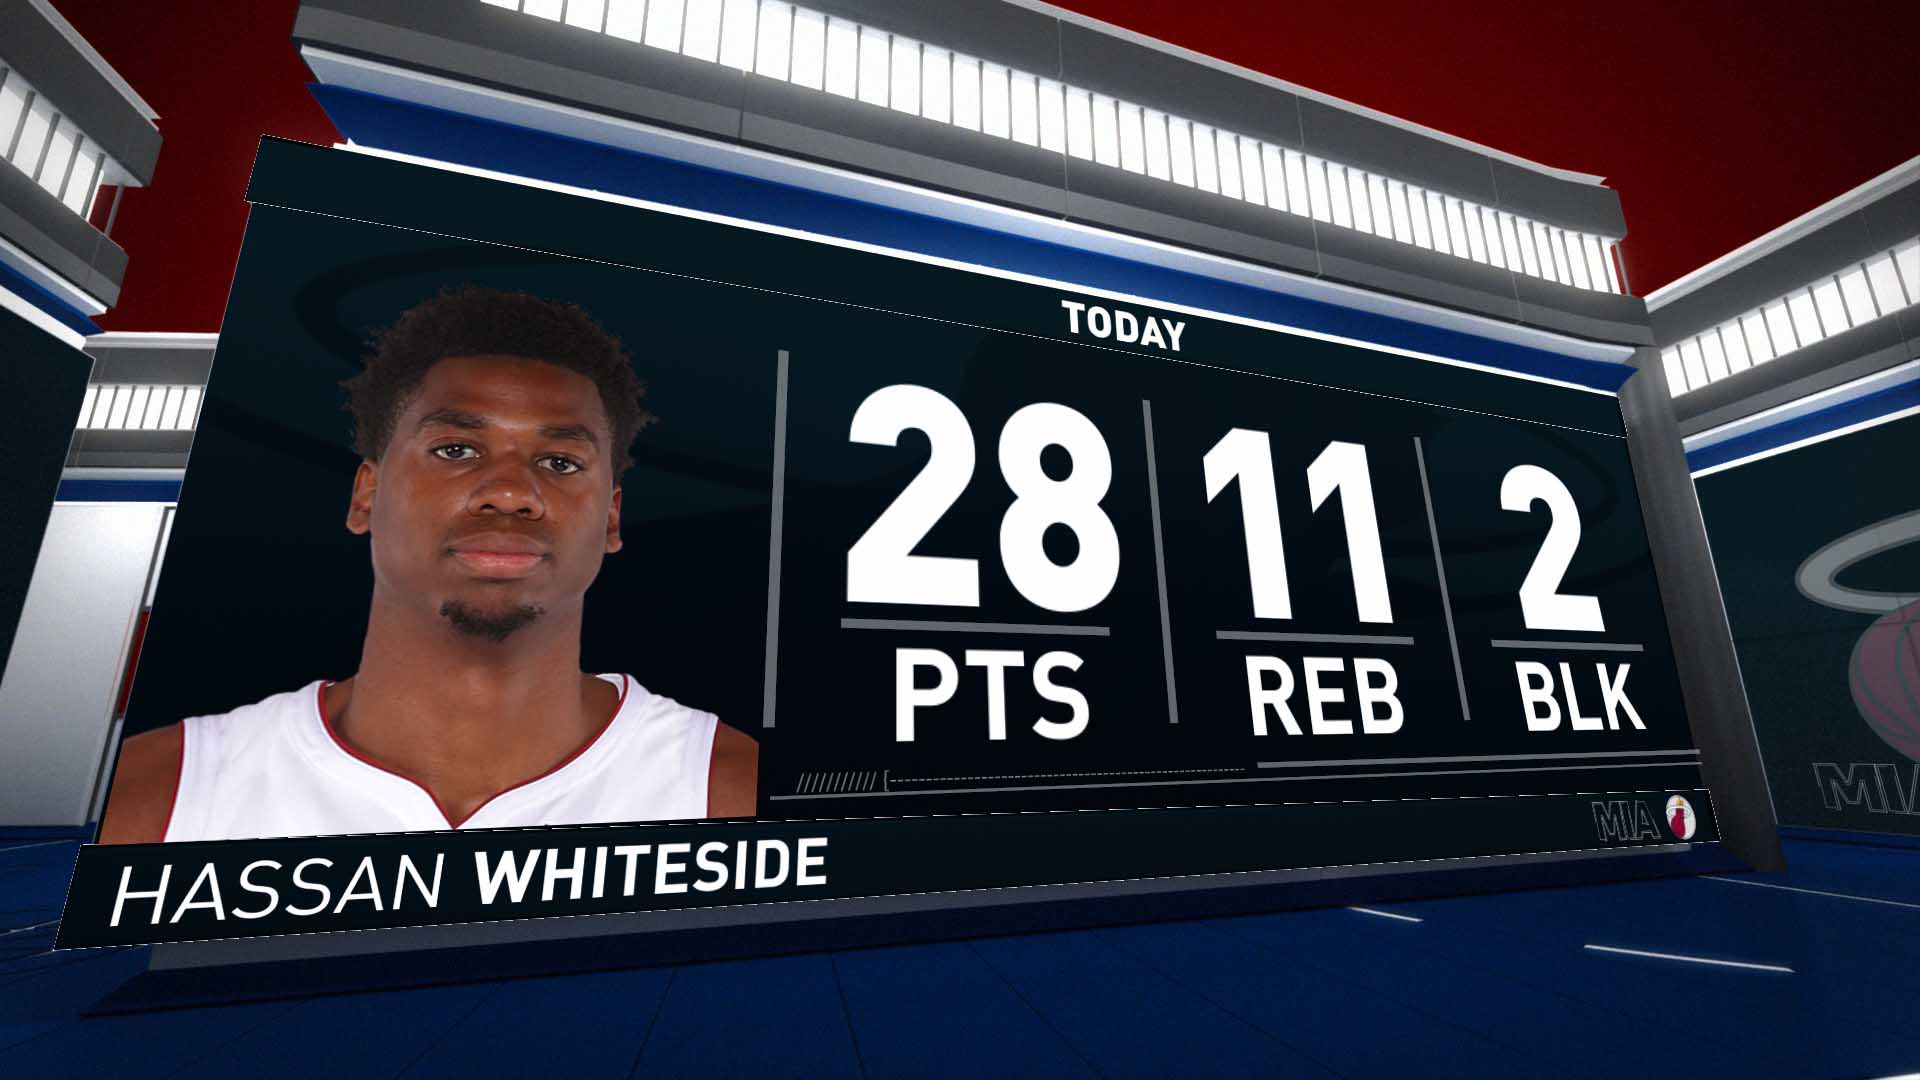 Highlights: Hassan Whiteside - Heat Vs. Blazers